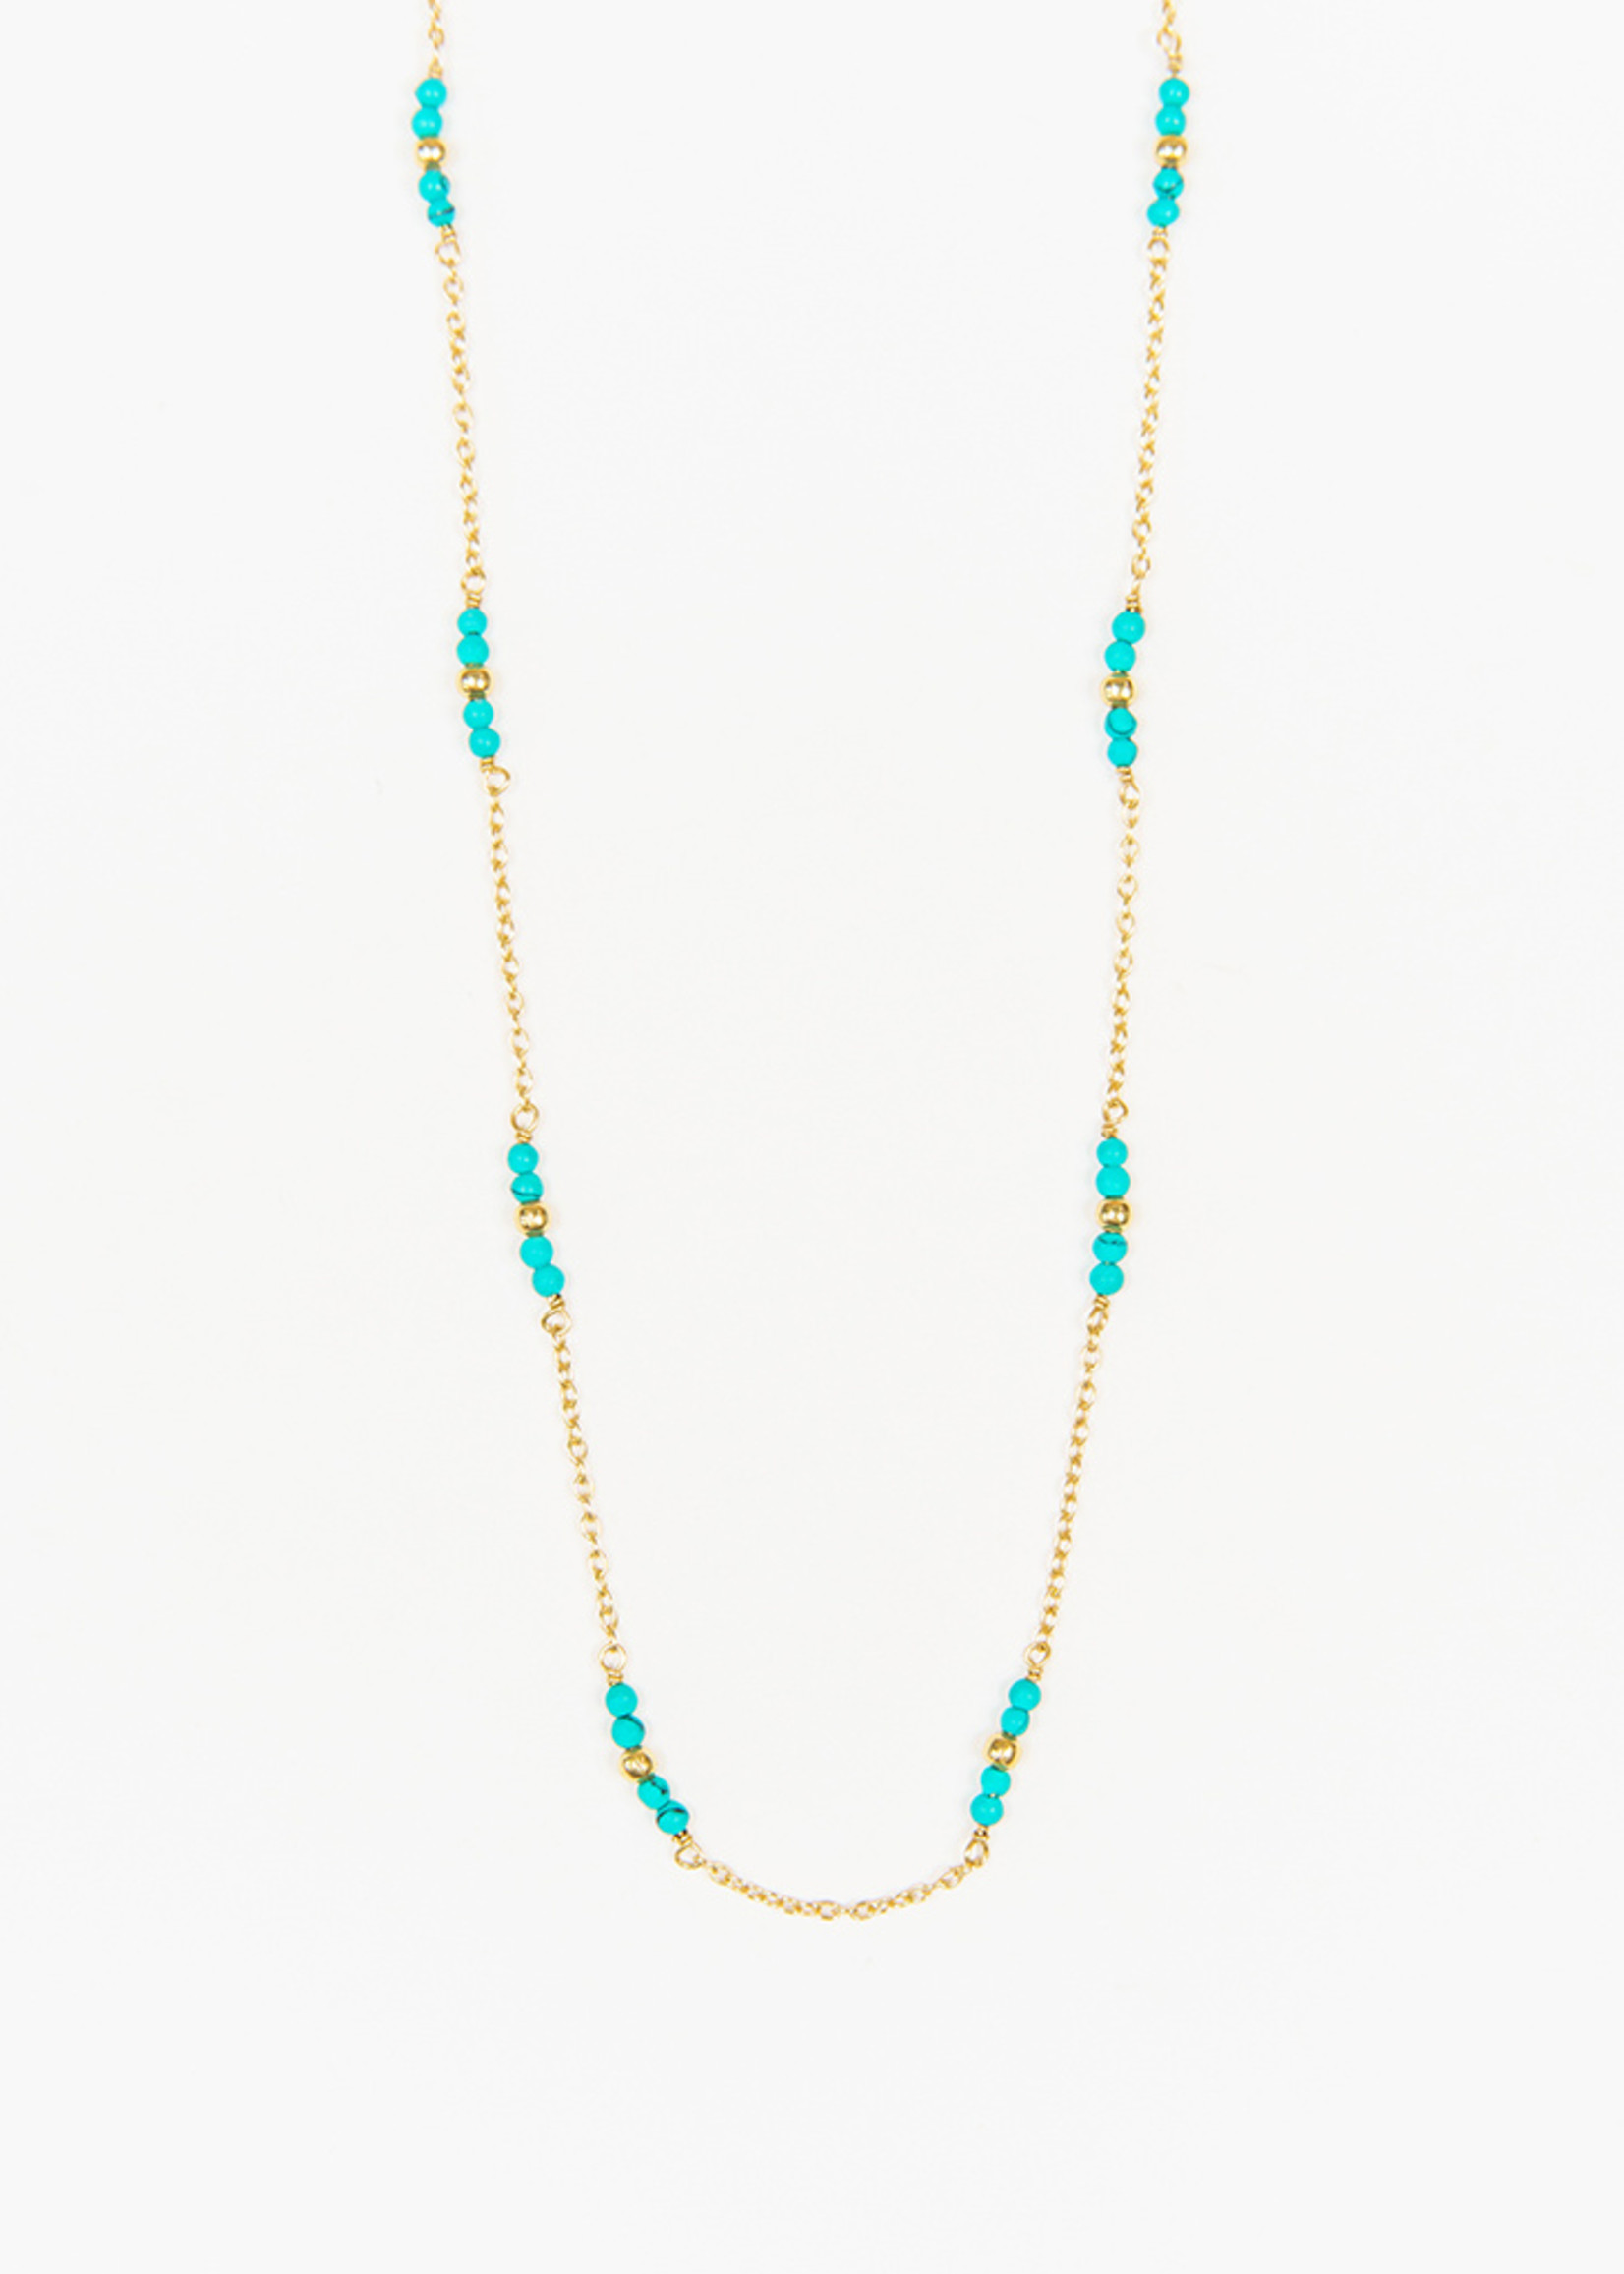 Delicate Turquoise Necklace